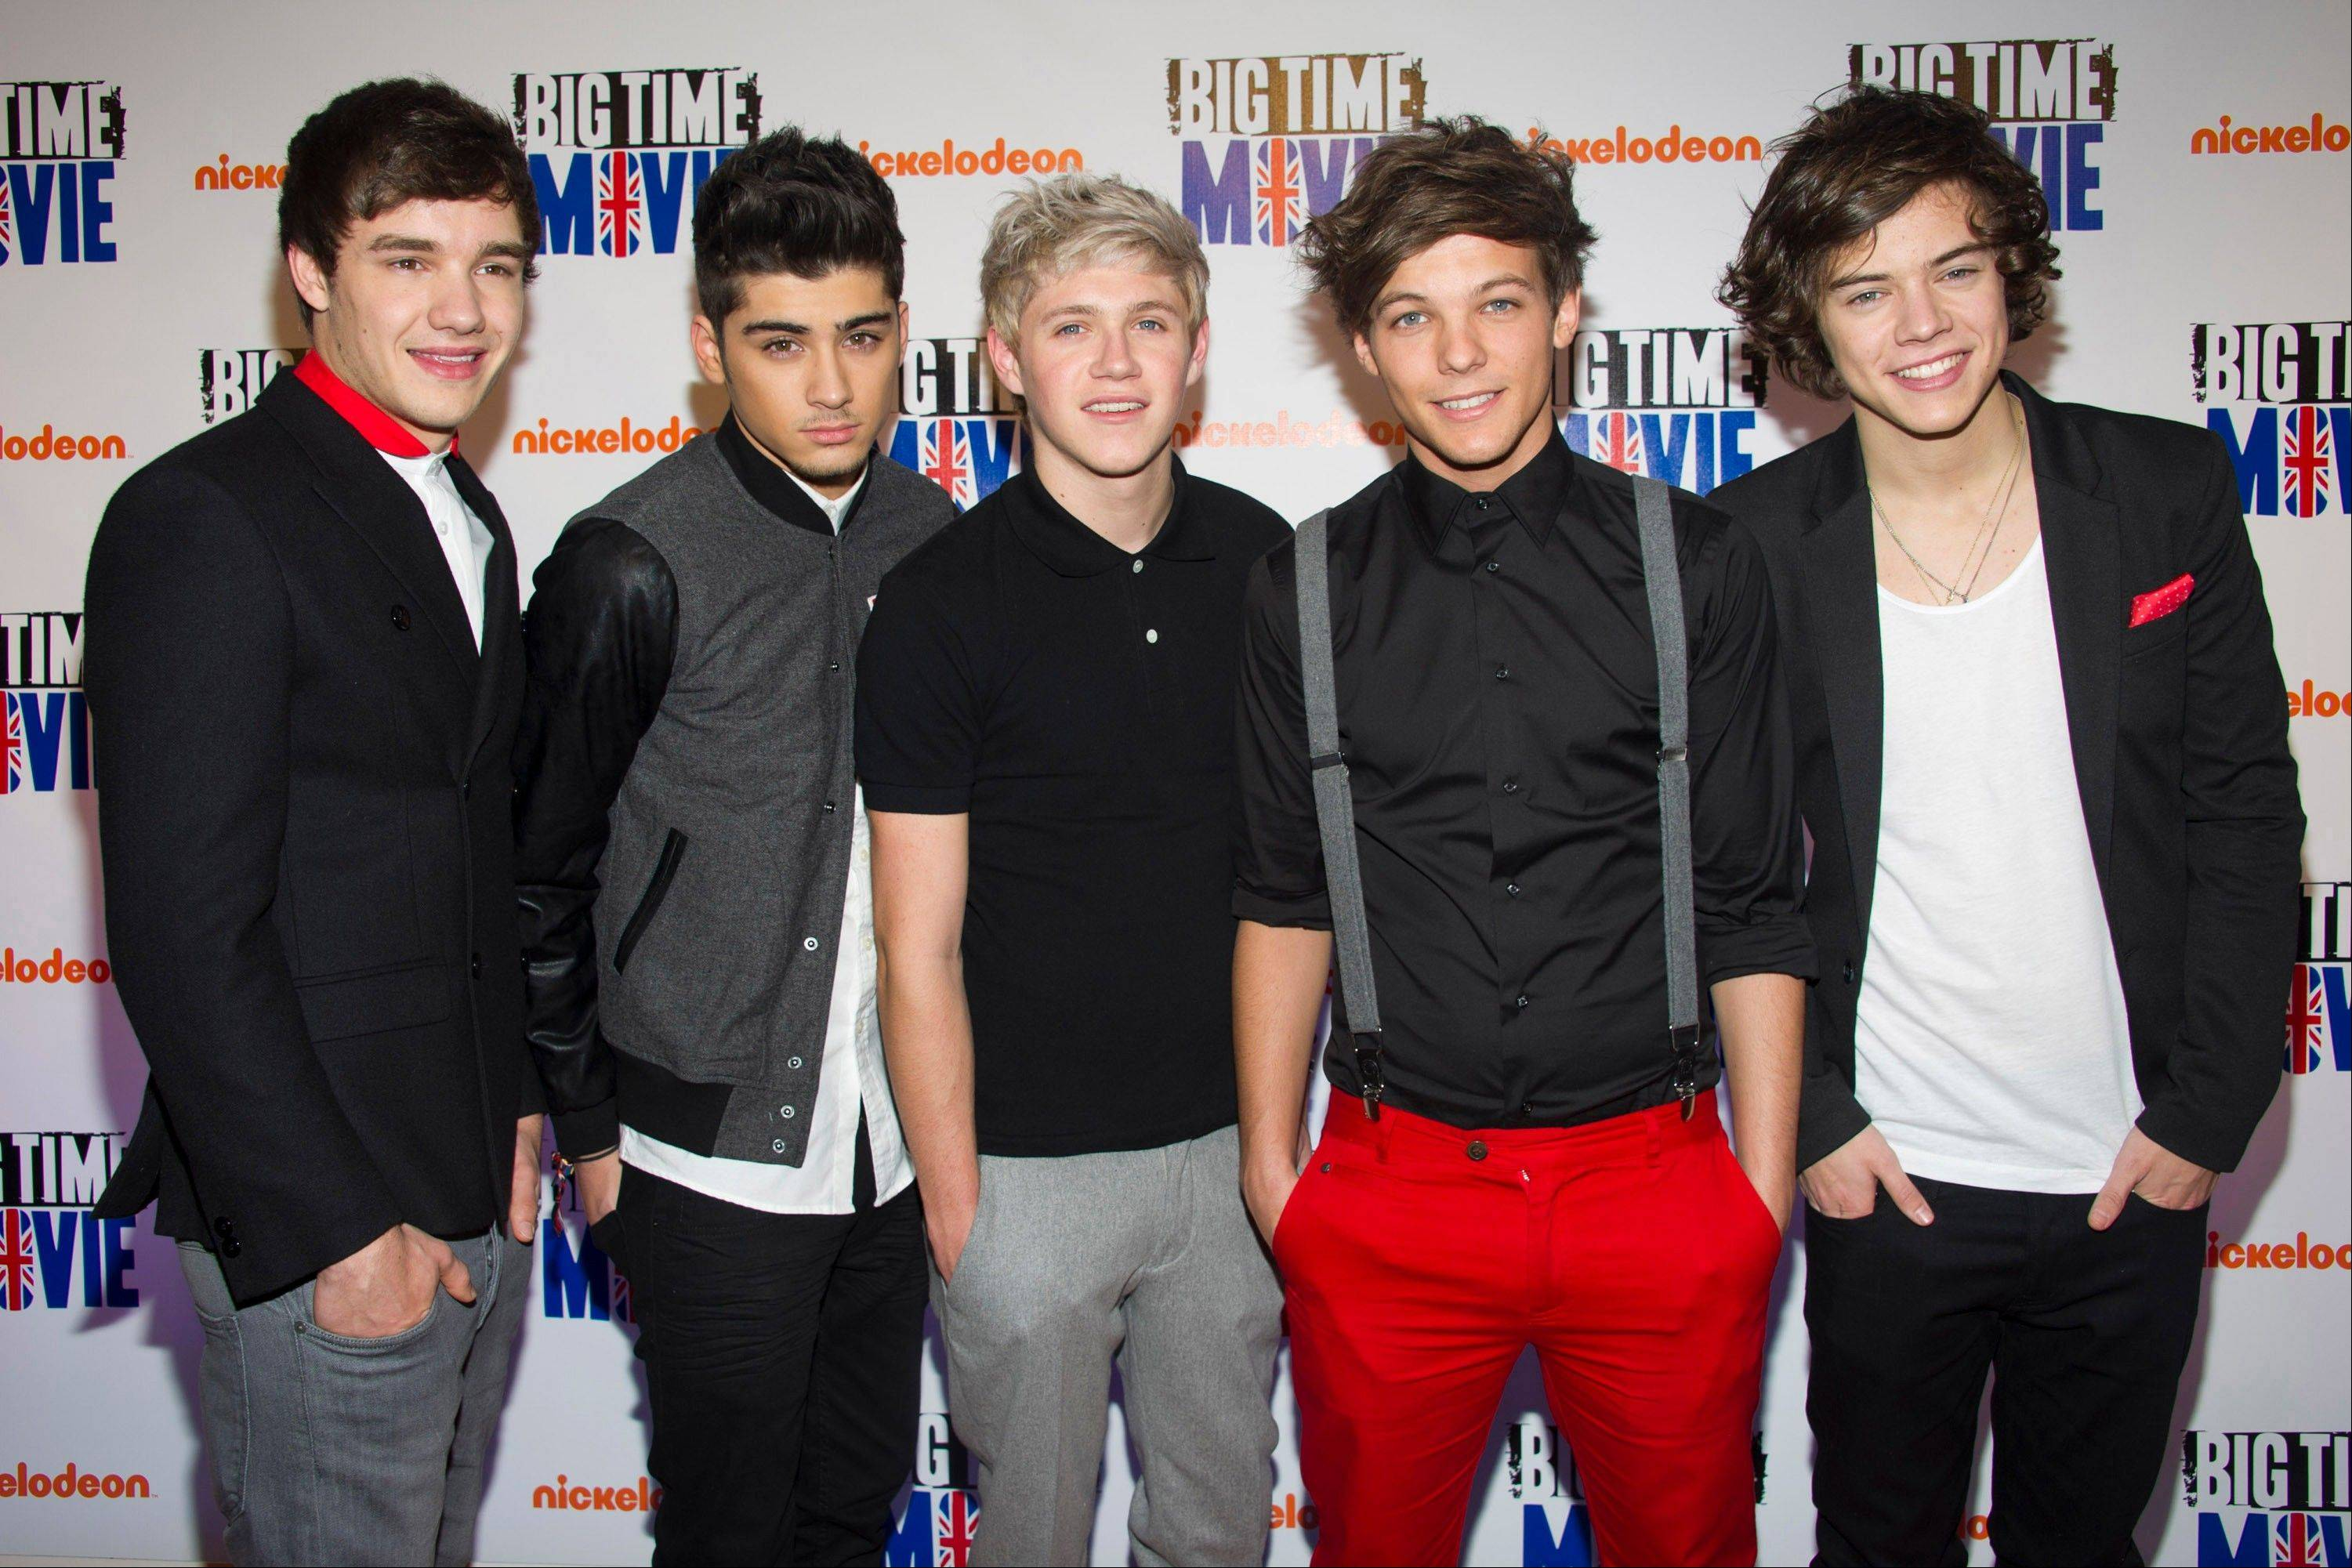 Members of the British-Irish boy band One Direction, (Liam Payne, Zayn Malik, Niall Horan, Louis Tomlinson and Harry Styles), are set to perform at the Allstate Arena in Rosemont.